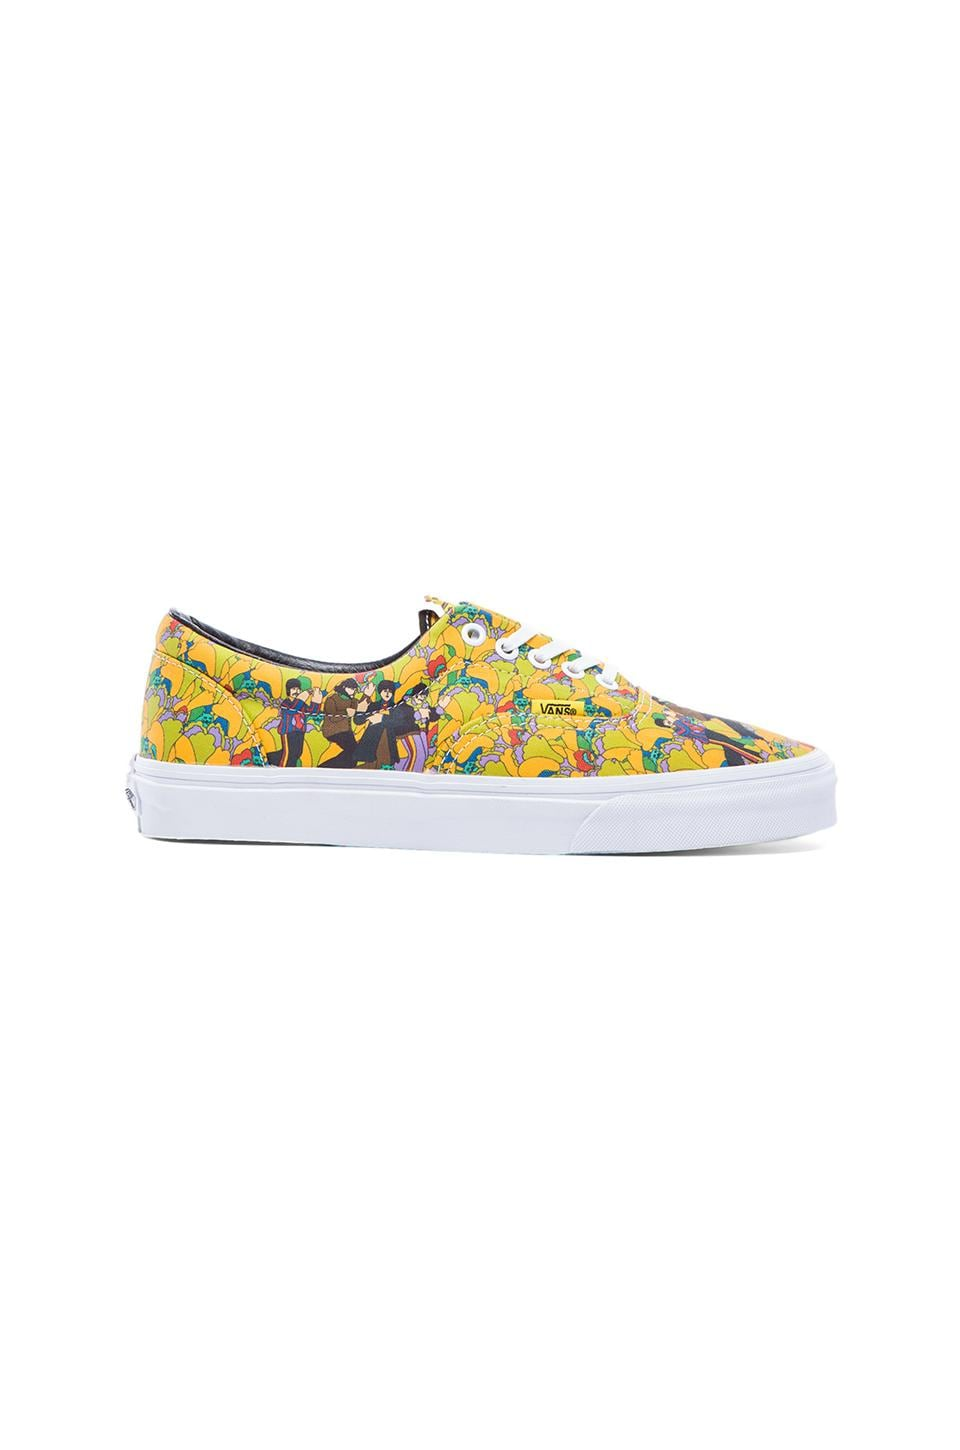 Vans Era The Beatles in Garden & True White